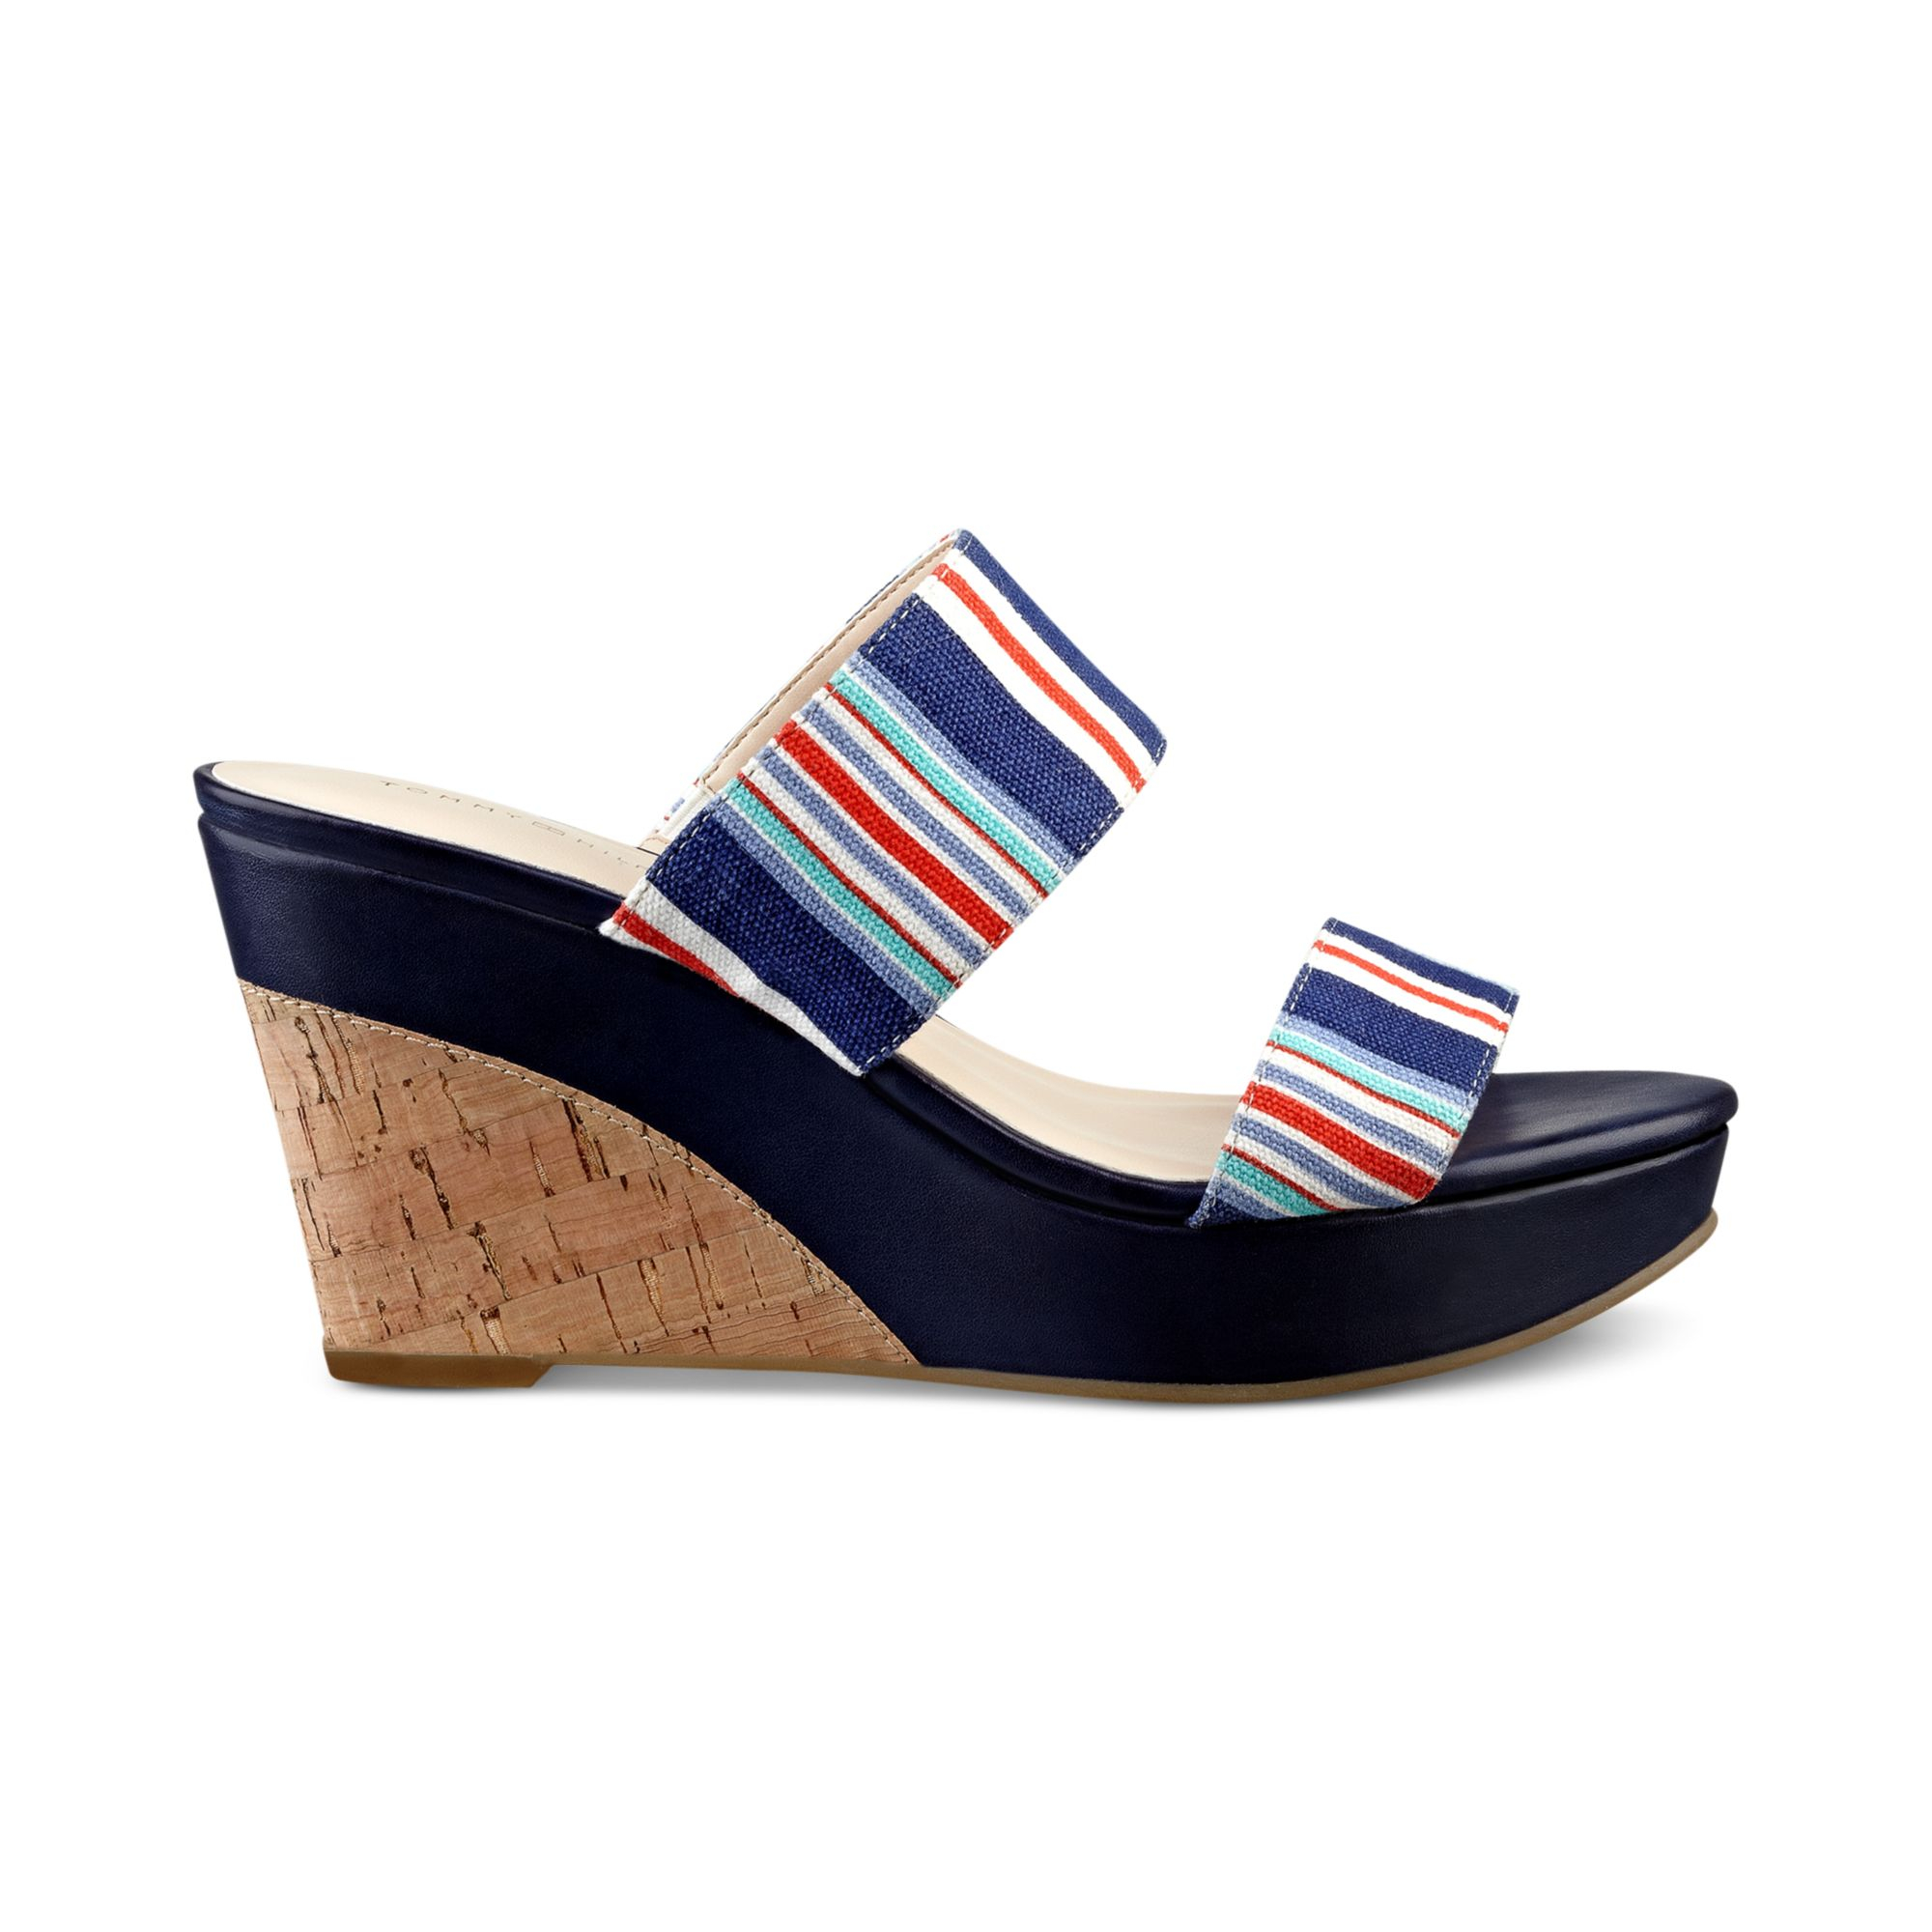 tommy hilfiger kadine platform wedge sandals in blue. Black Bedroom Furniture Sets. Home Design Ideas